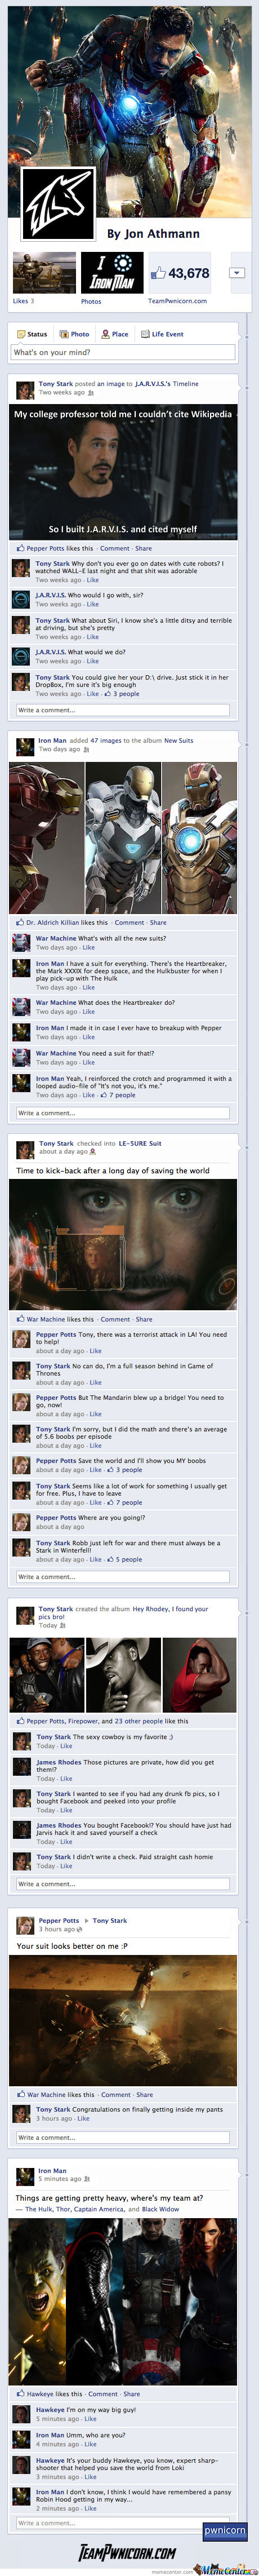 Iron Man 3 On Facebook